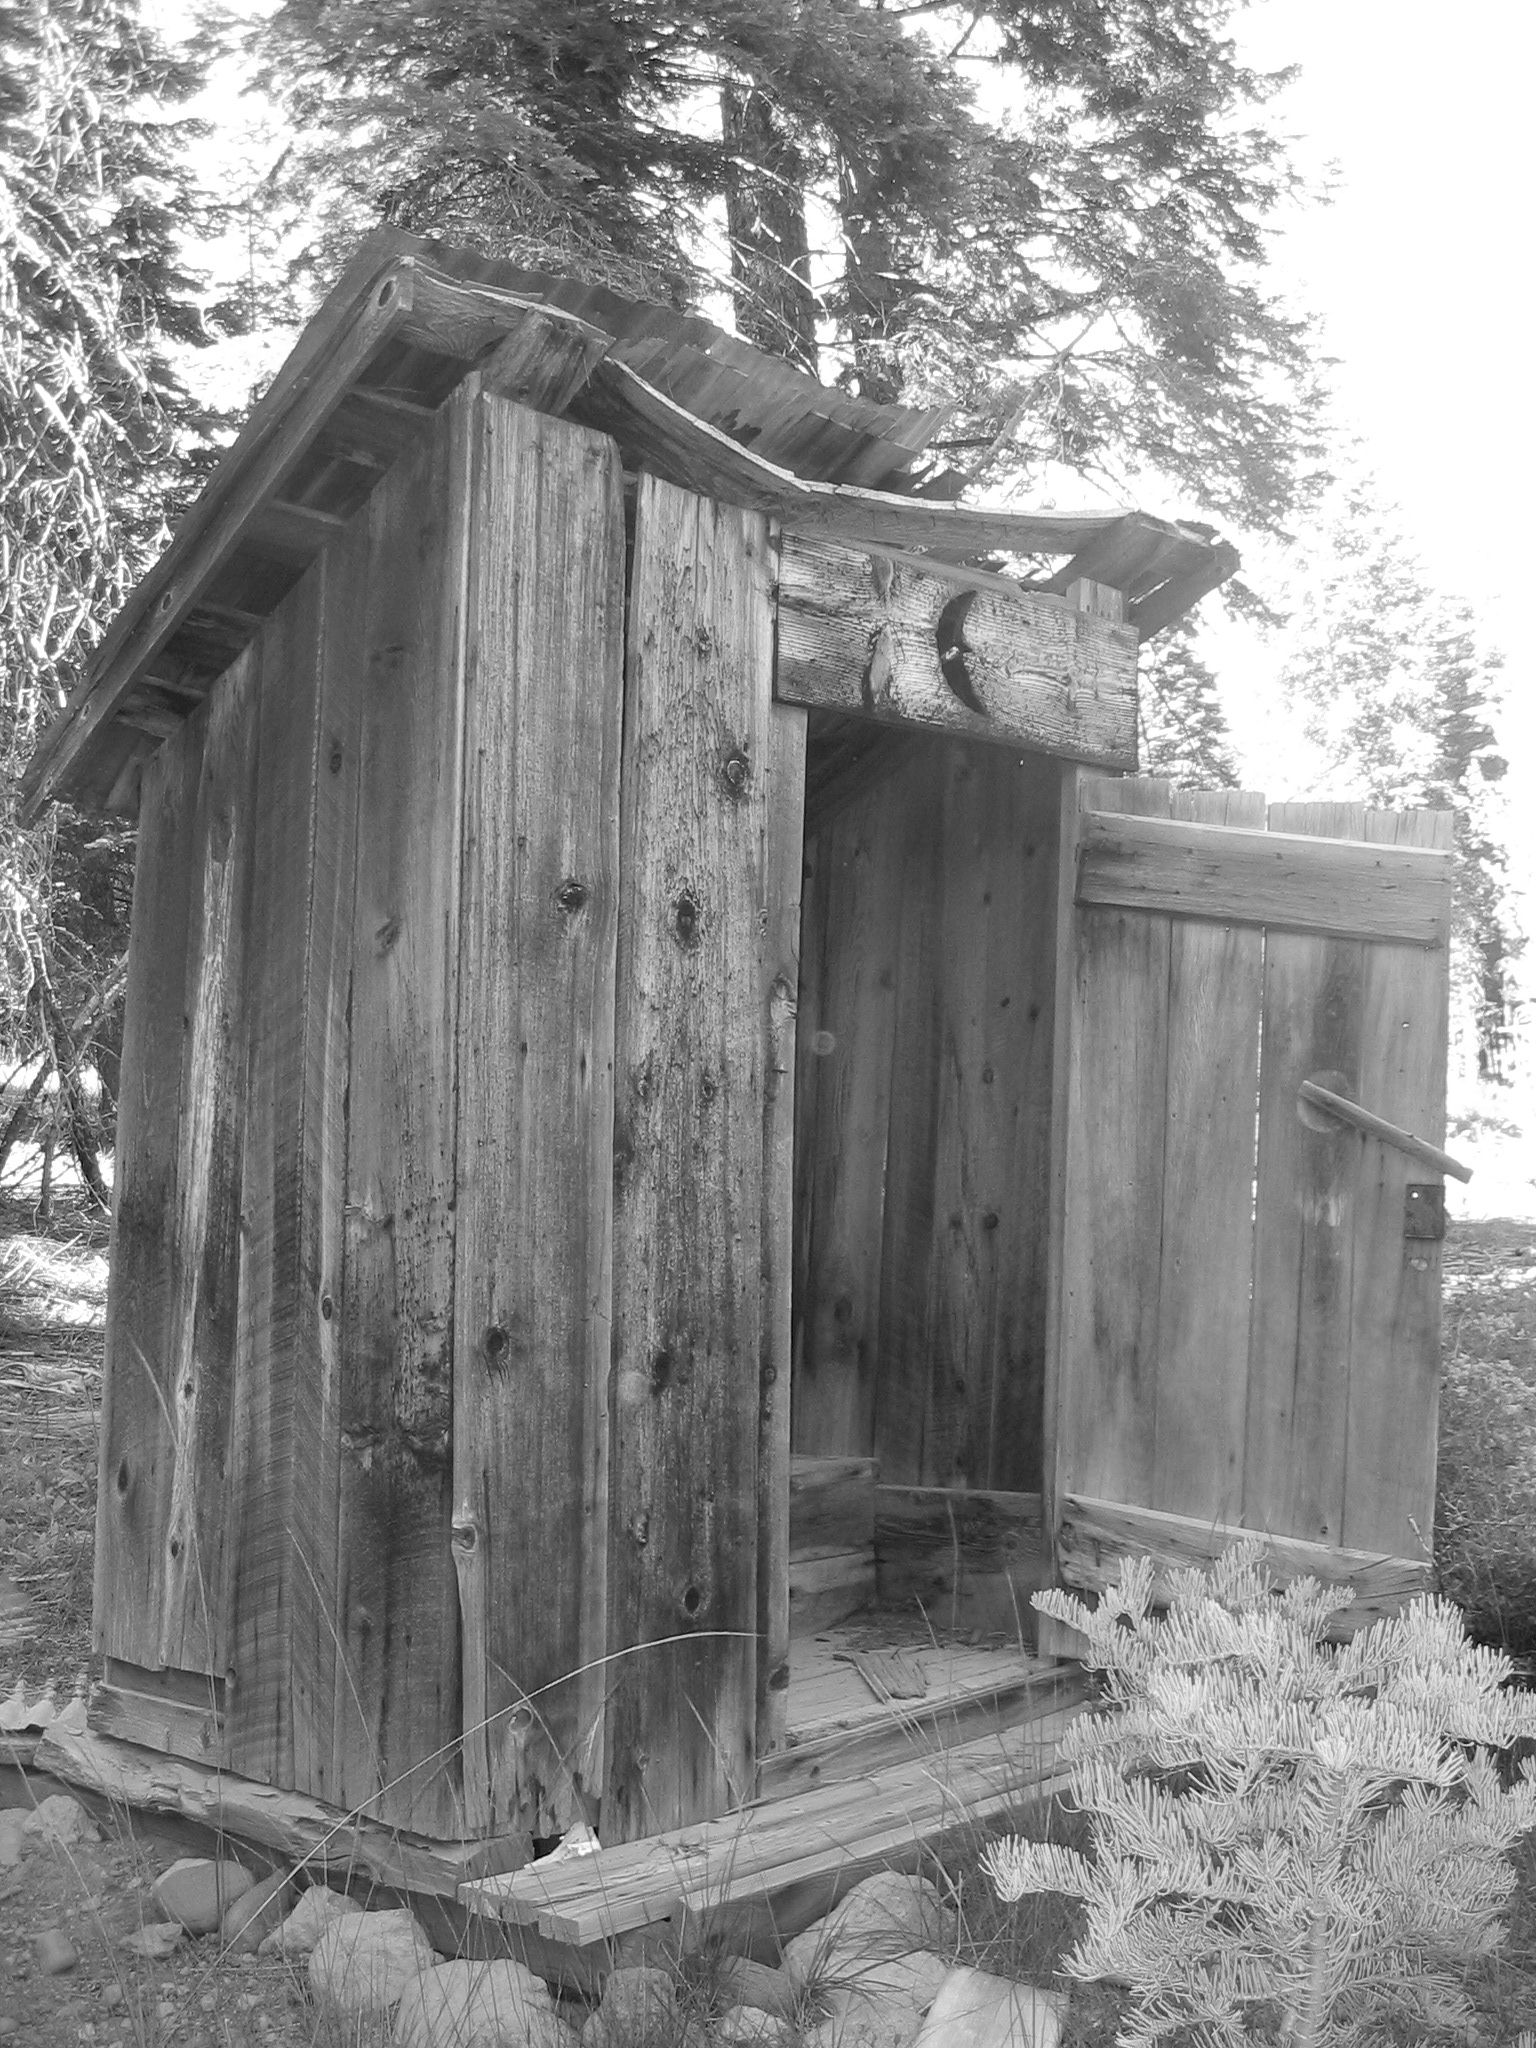 Superb 1000 Images About Old Outhouses On Pinterest Toilets Tool Largest Home Design Picture Inspirations Pitcheantrous